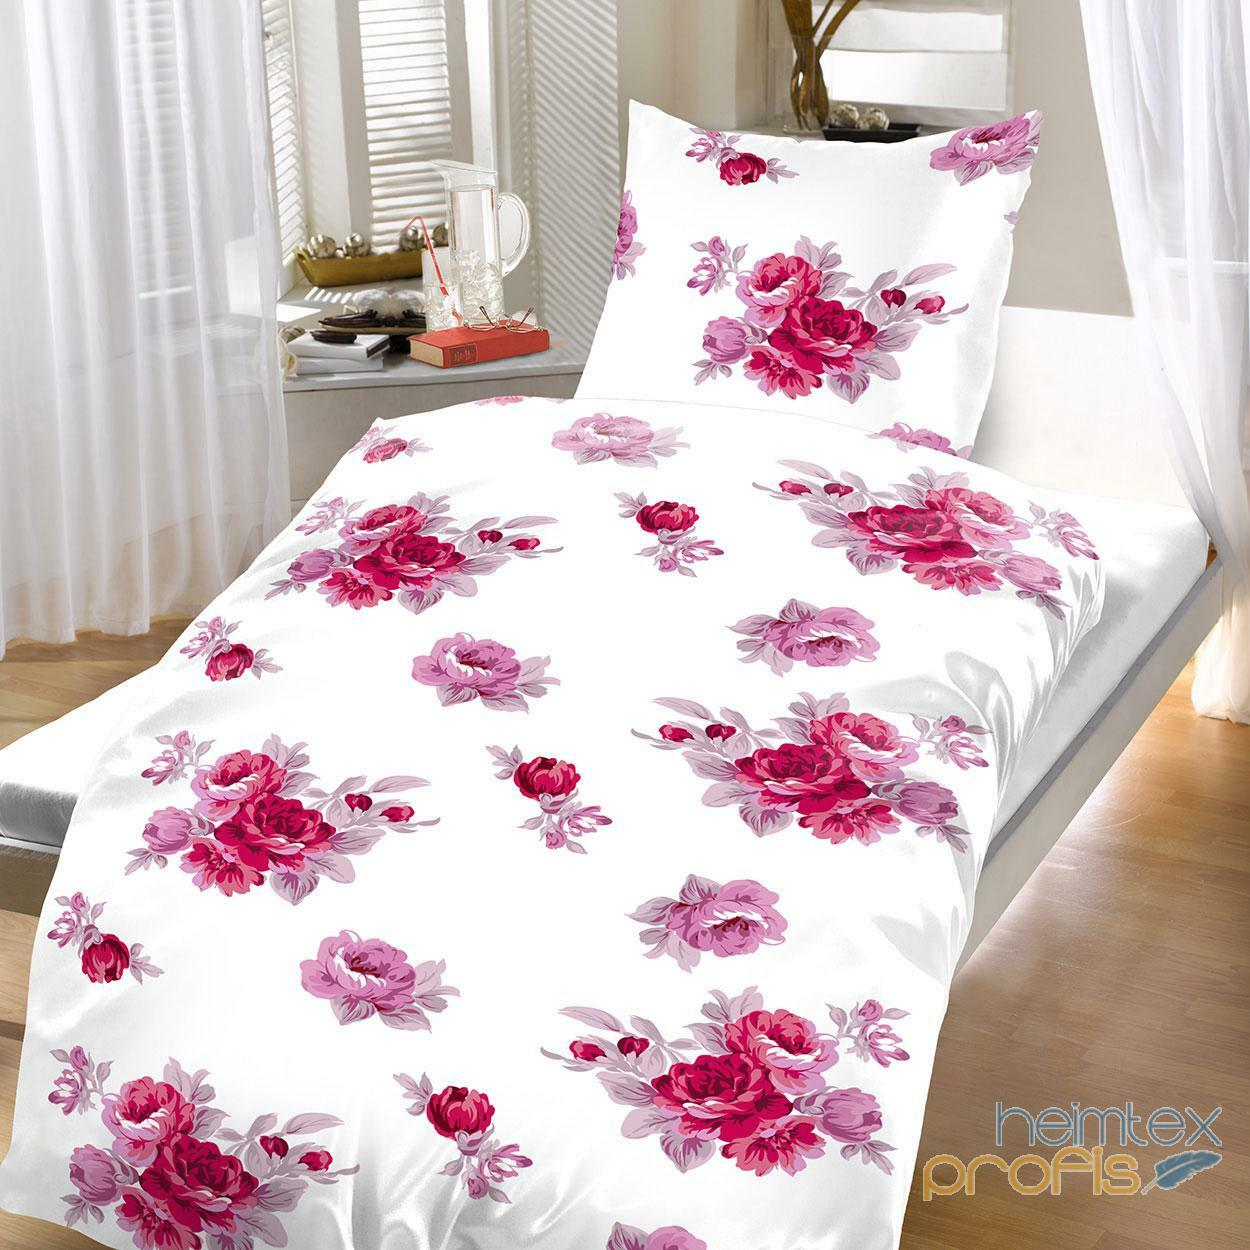 baumwoll bettw sche 135x200 cm 2 teilig floral wei rosa. Black Bedroom Furniture Sets. Home Design Ideas